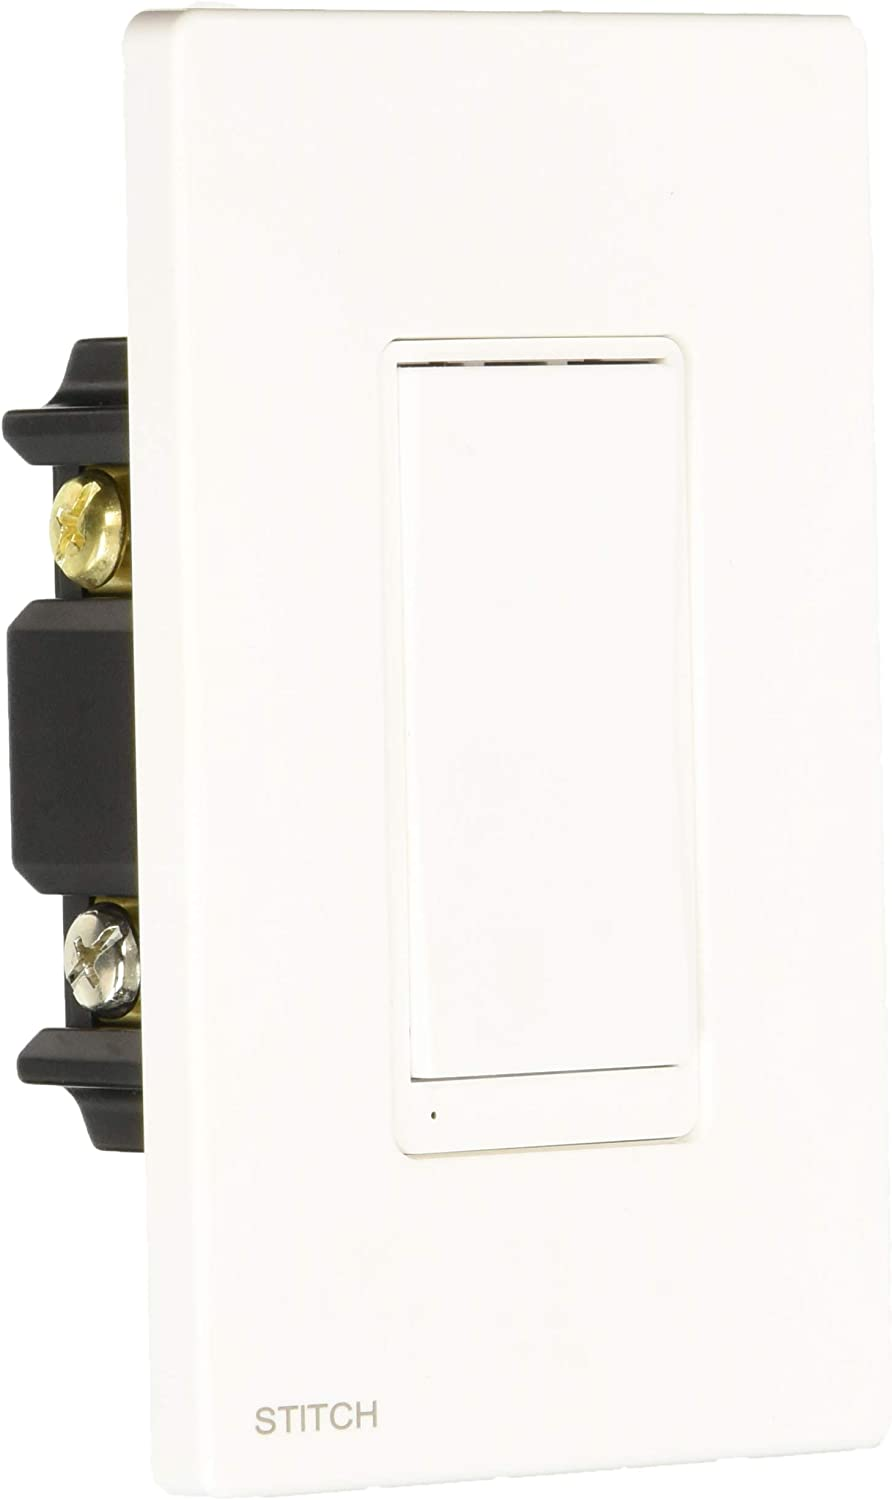 Monoprice Wireless Smart in-Wall On/Off Light Switch Wall Plate - White, Works with Alexa and Google Home, No Hub Required